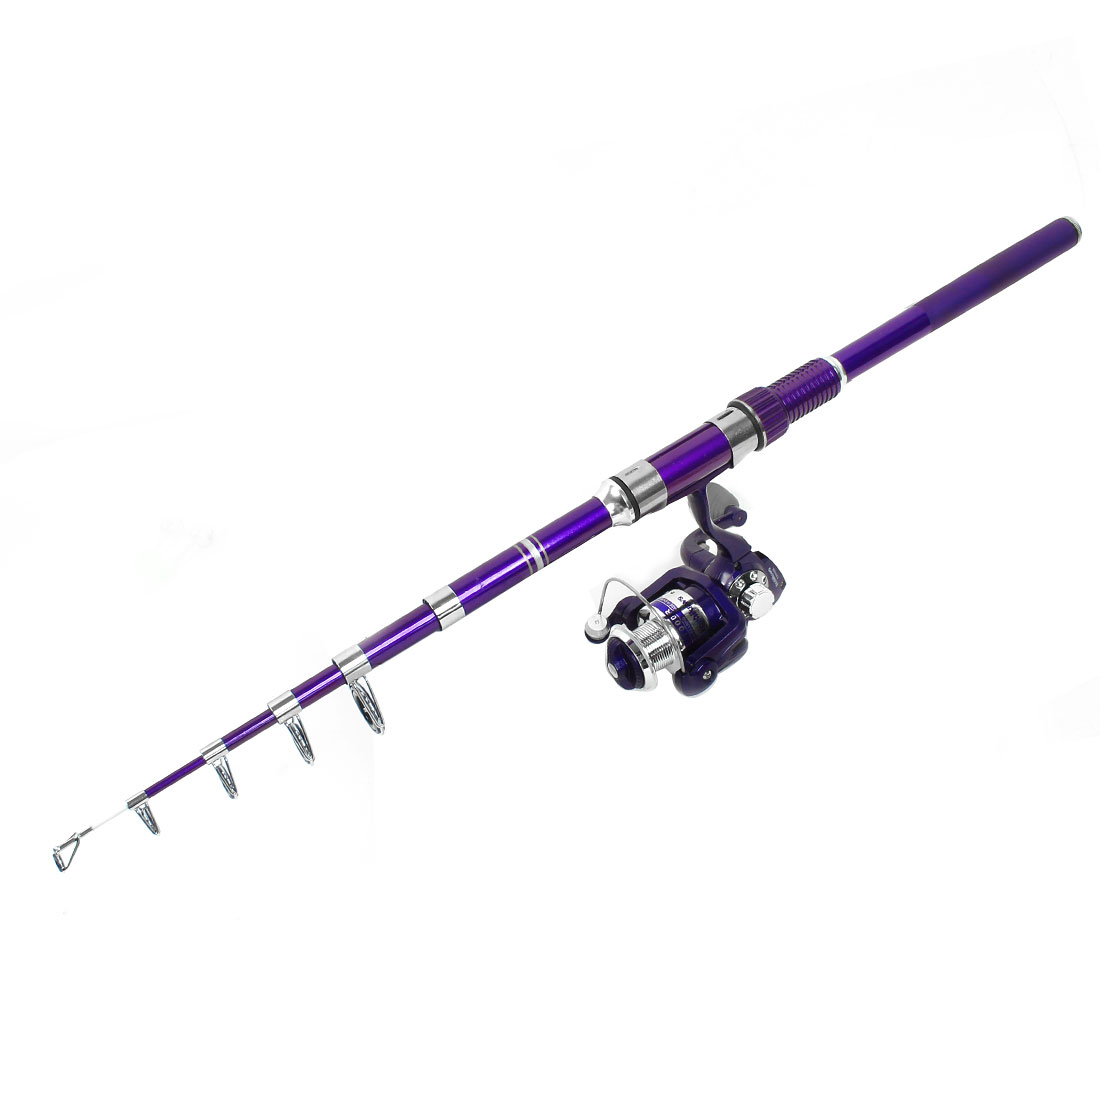 8 in 1 Fish Bobbers Fishooks Alert Bell 6.2 Ft Fishing Pole Purple Set